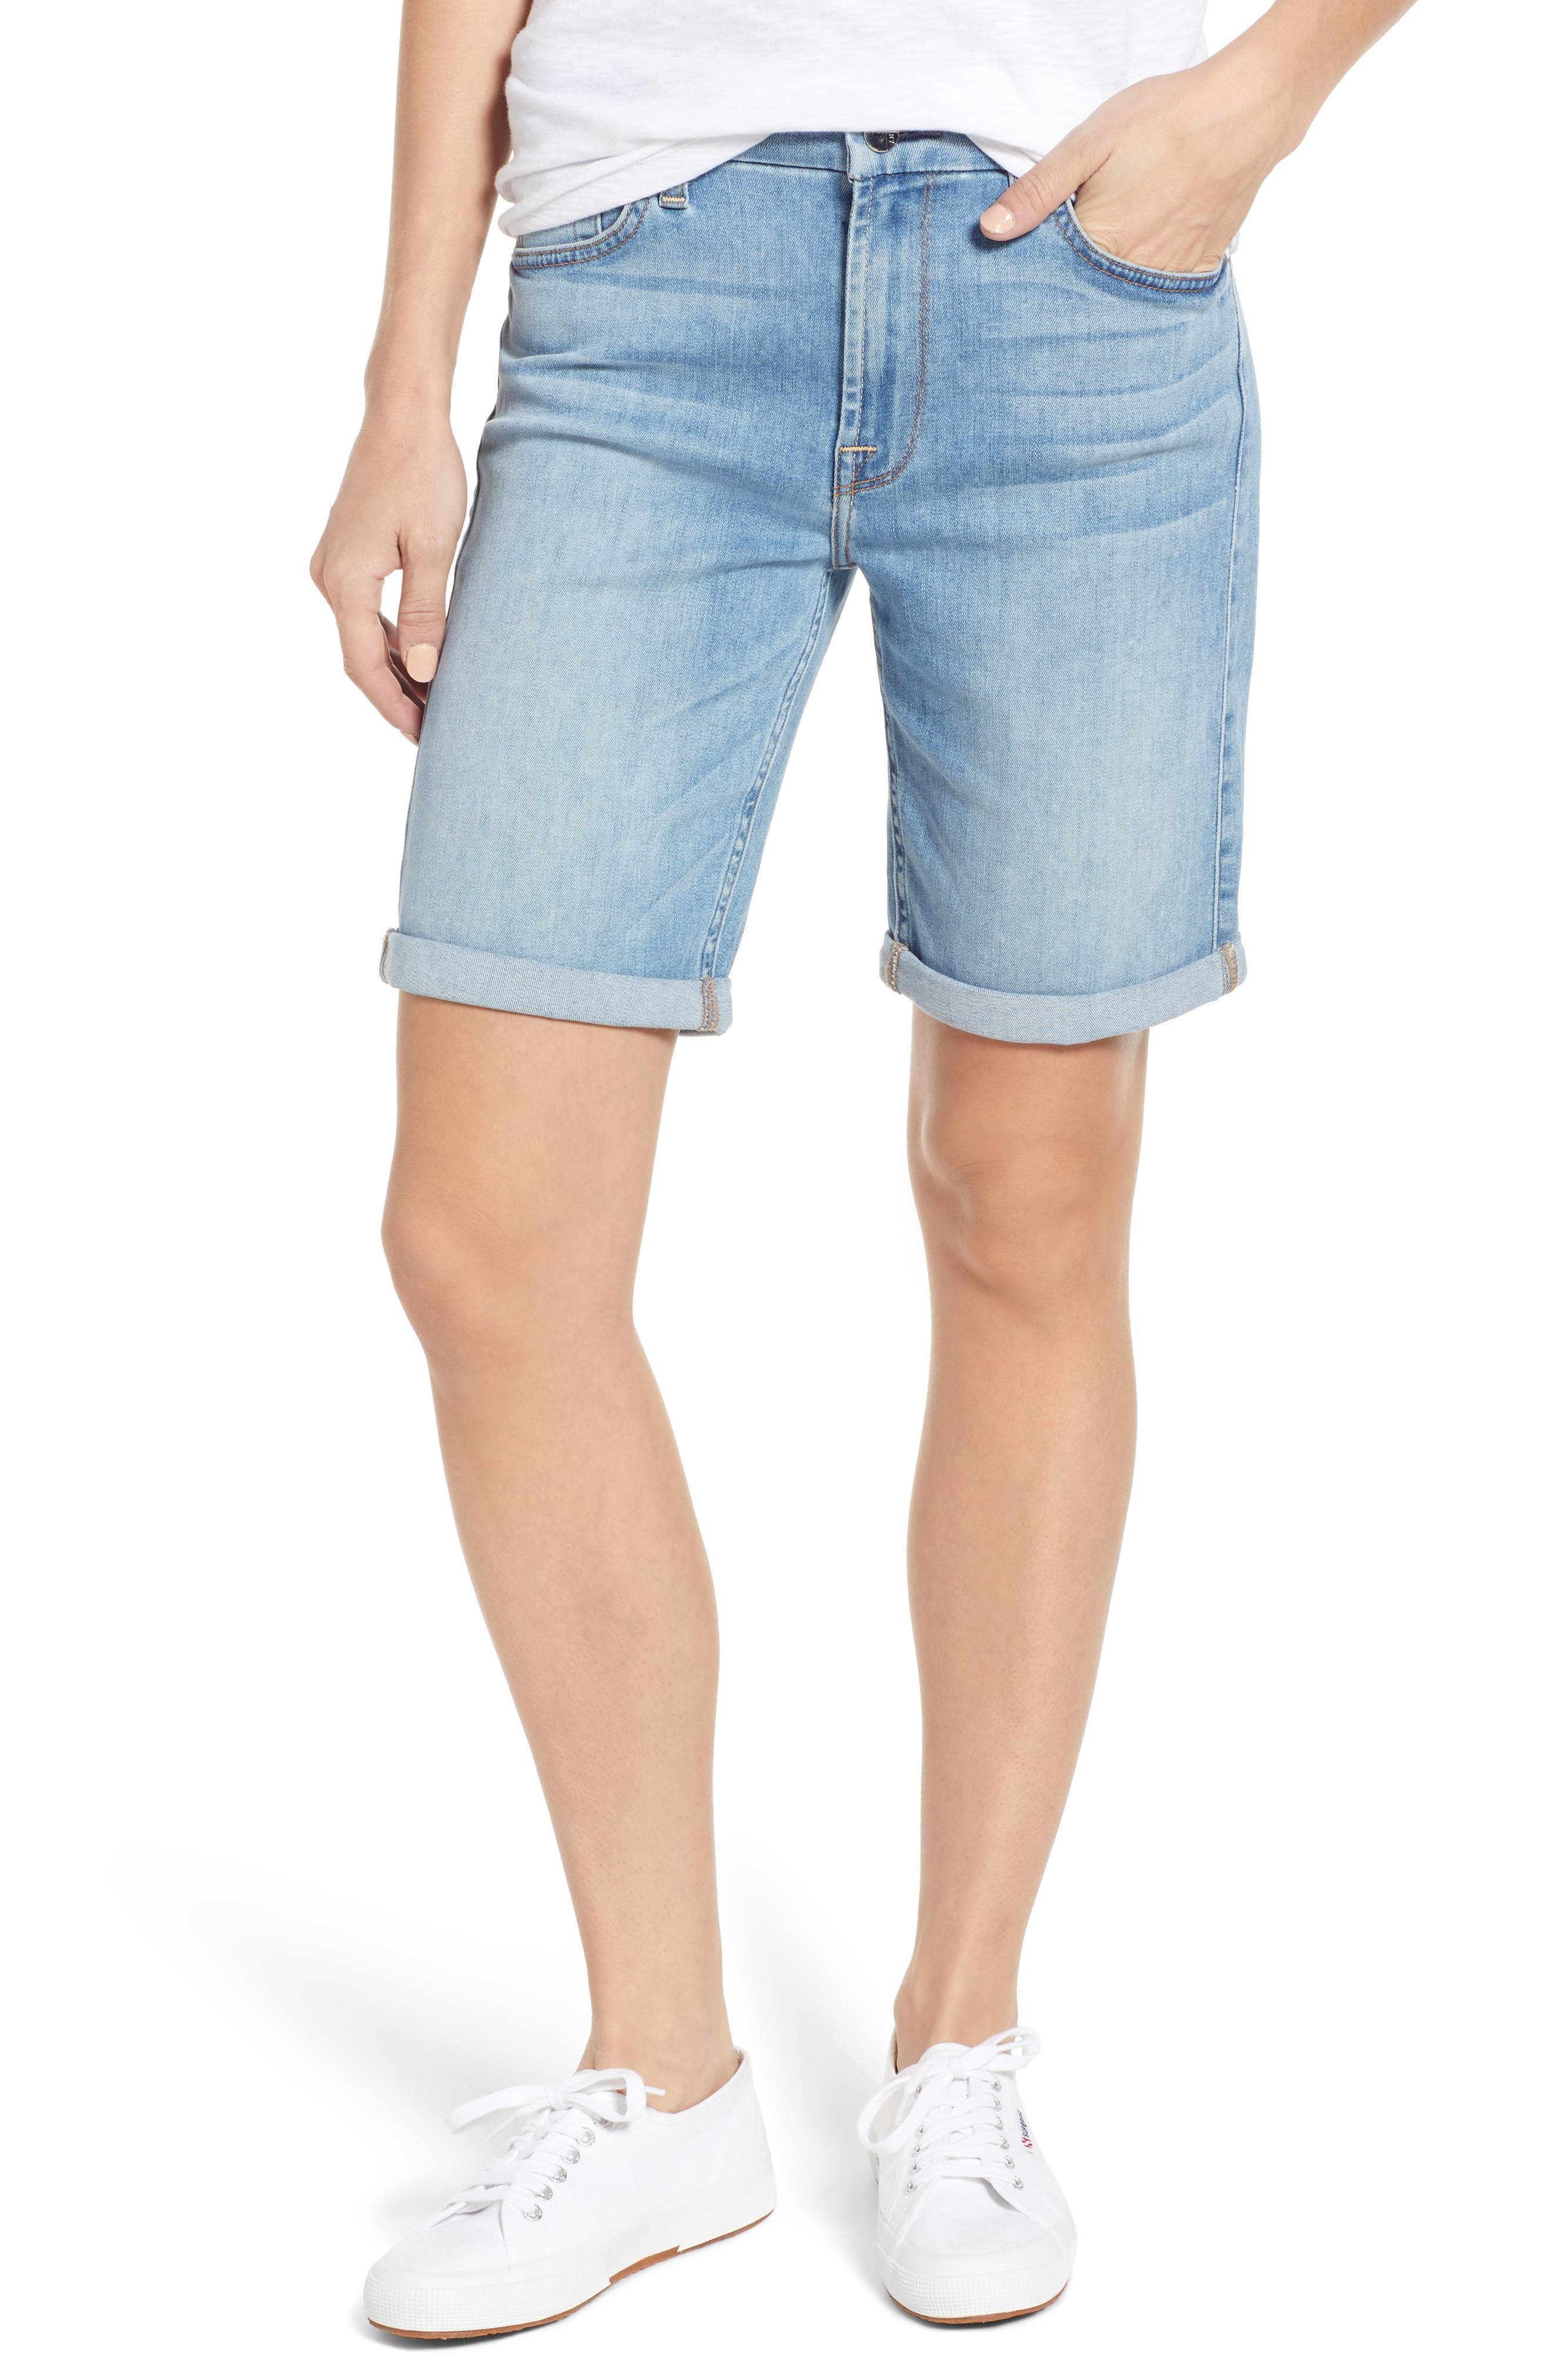 JEN7 BY 7 FOR ALL MANKIND, Roll Cuff Bermuda Shorts, Main thumbnail 1, color, LA QUINTA